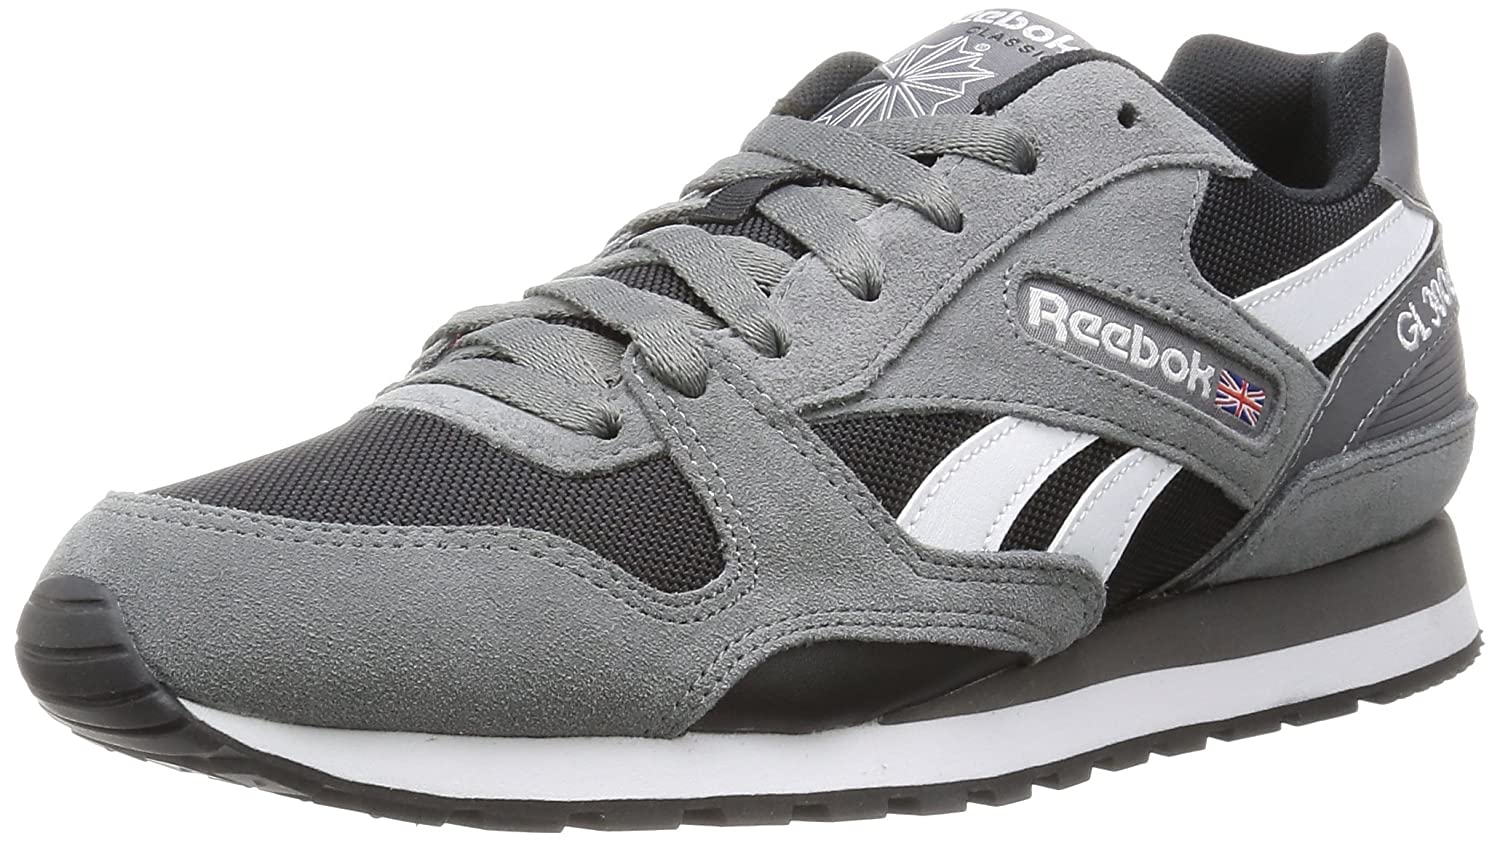 Reebok Herren Gl 3000 Low-Top  43 EU|Grau (Black/Shark/White)